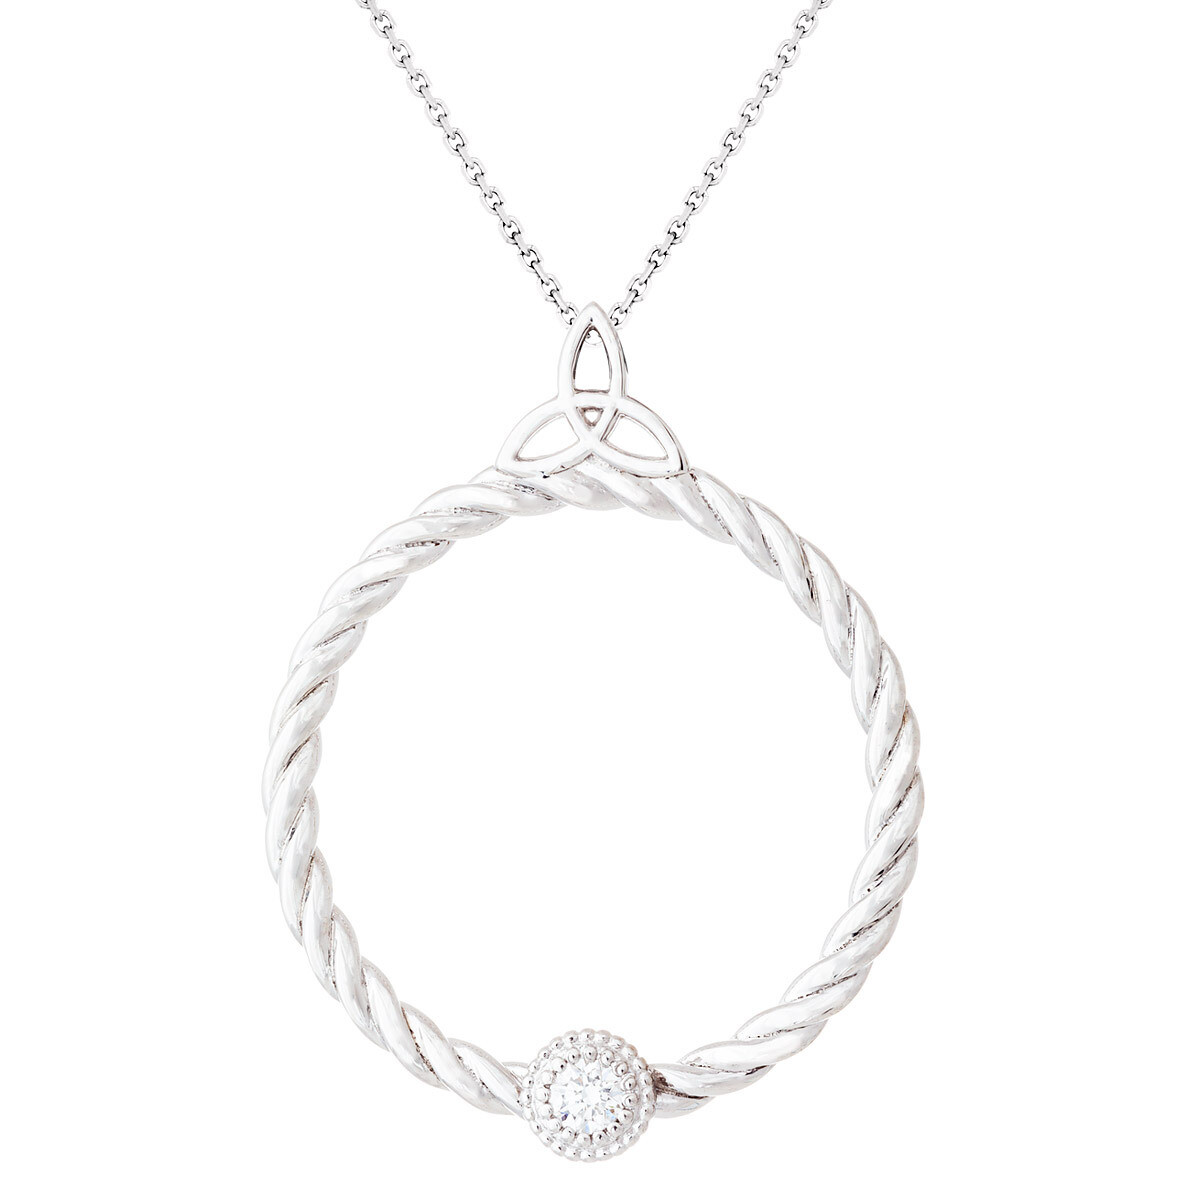 CC Celtic Braid©—Silver w/ Diamond